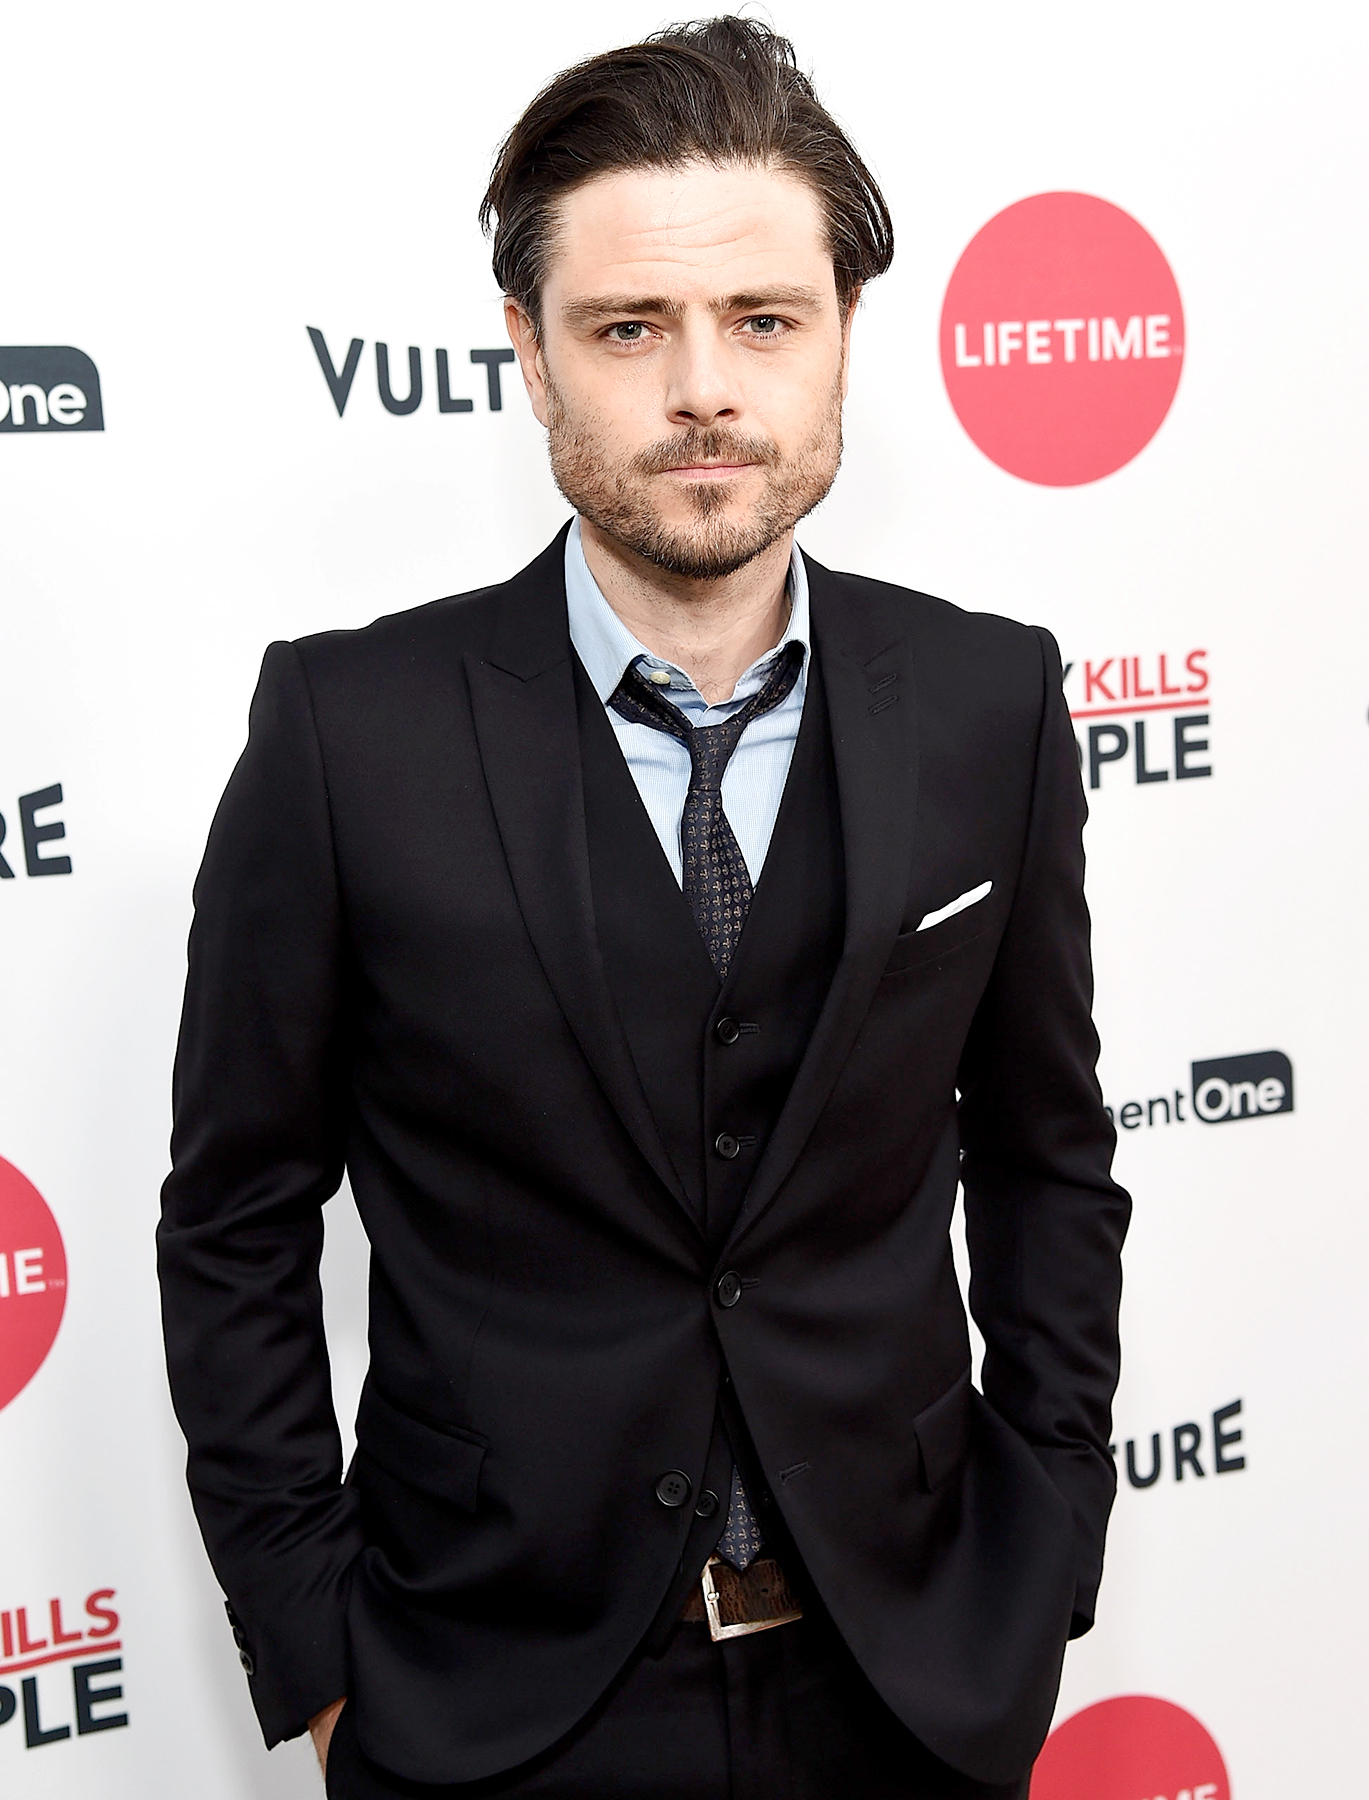 """Richard Short attends Lifetime's """"Mary Kills People"""" Broad Focus Screening Event at The London West Hollywood on April 19, 2017 in West Hollywood, California."""